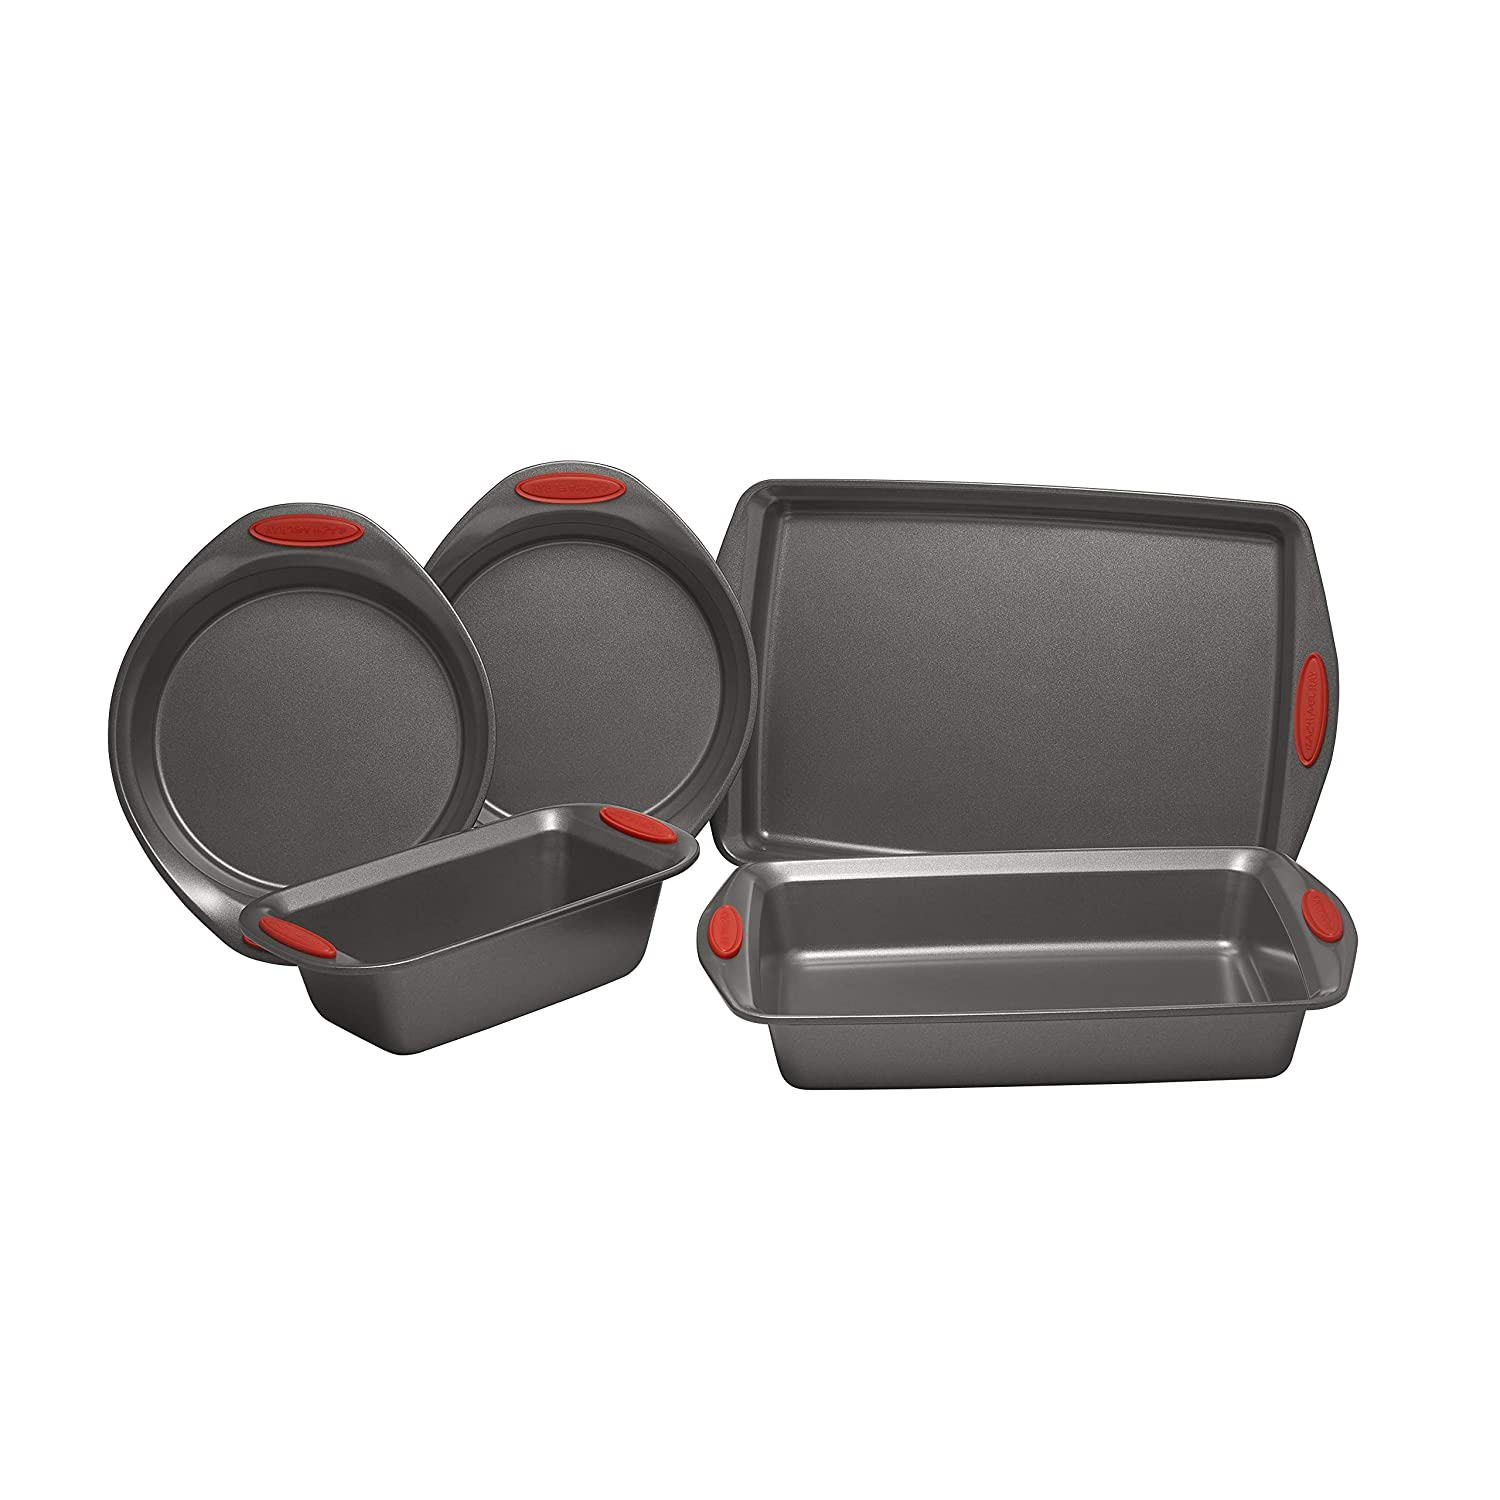 Rachael Ray Yum-o! Nonstick Oven Lovin' Bakeware Set, Gray with Red Handles. 5-Piece Set